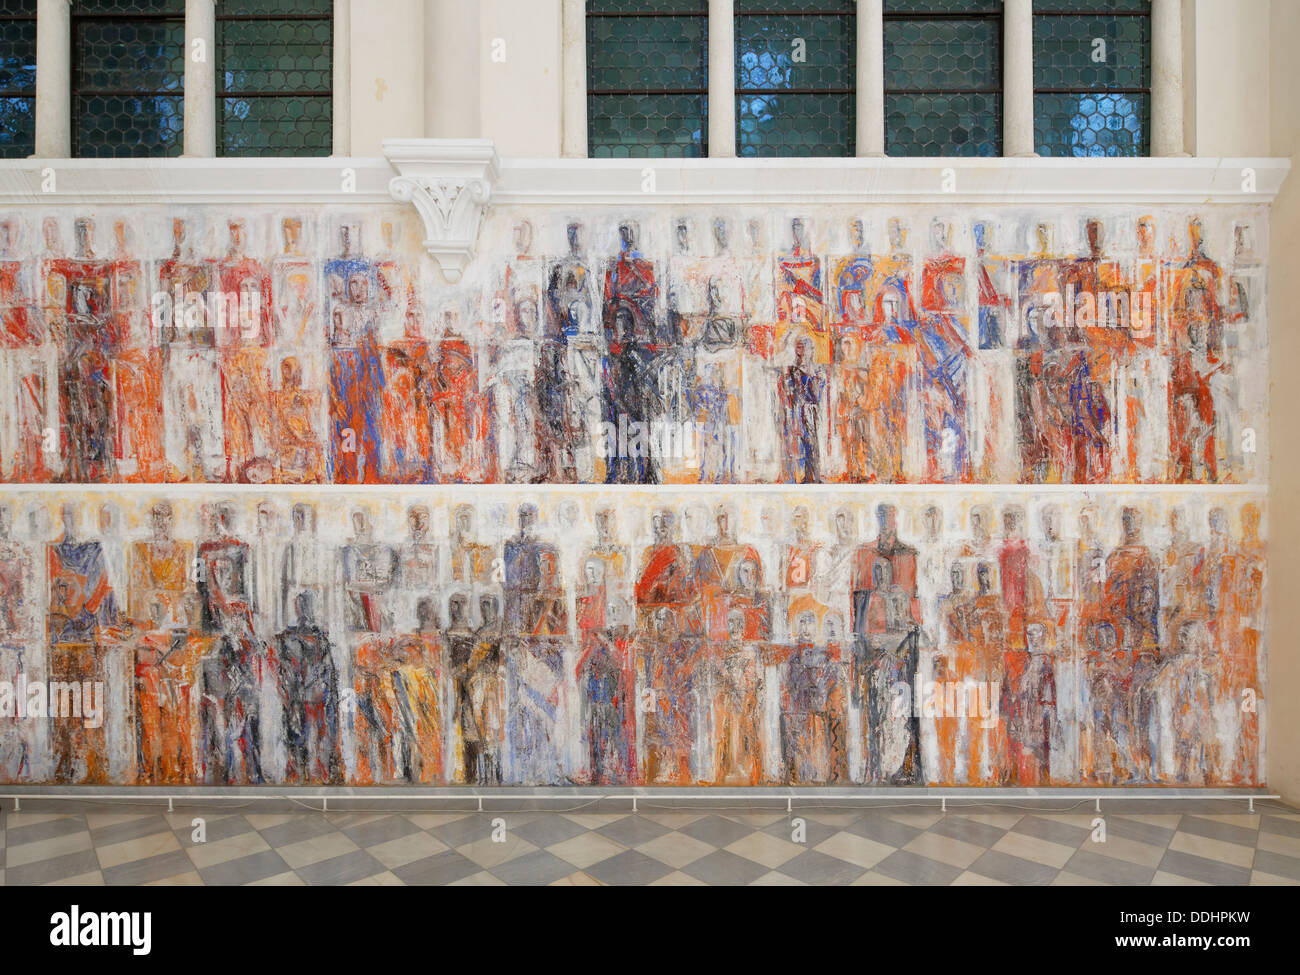 Art of color worrstadt - Secco Fresco Painting By Valentin Oman 1987 In The Church Of Marianum Tanzenberg